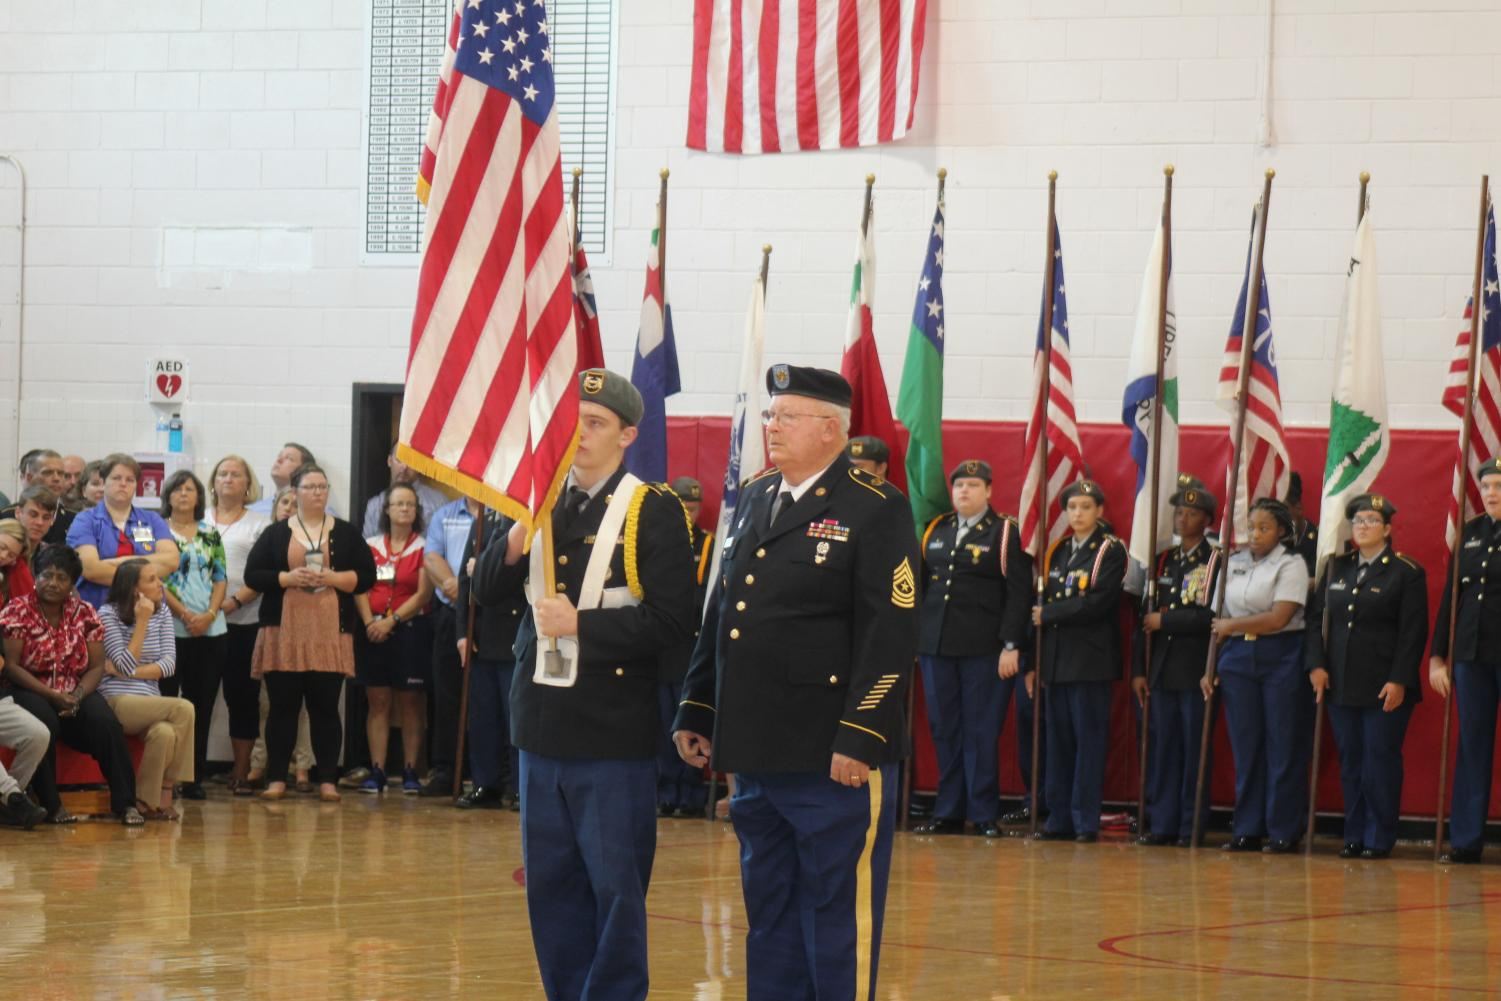 Junior Brandon Day presenting the United States of America flag accompanied by Sgt. Major Hubert Royall.